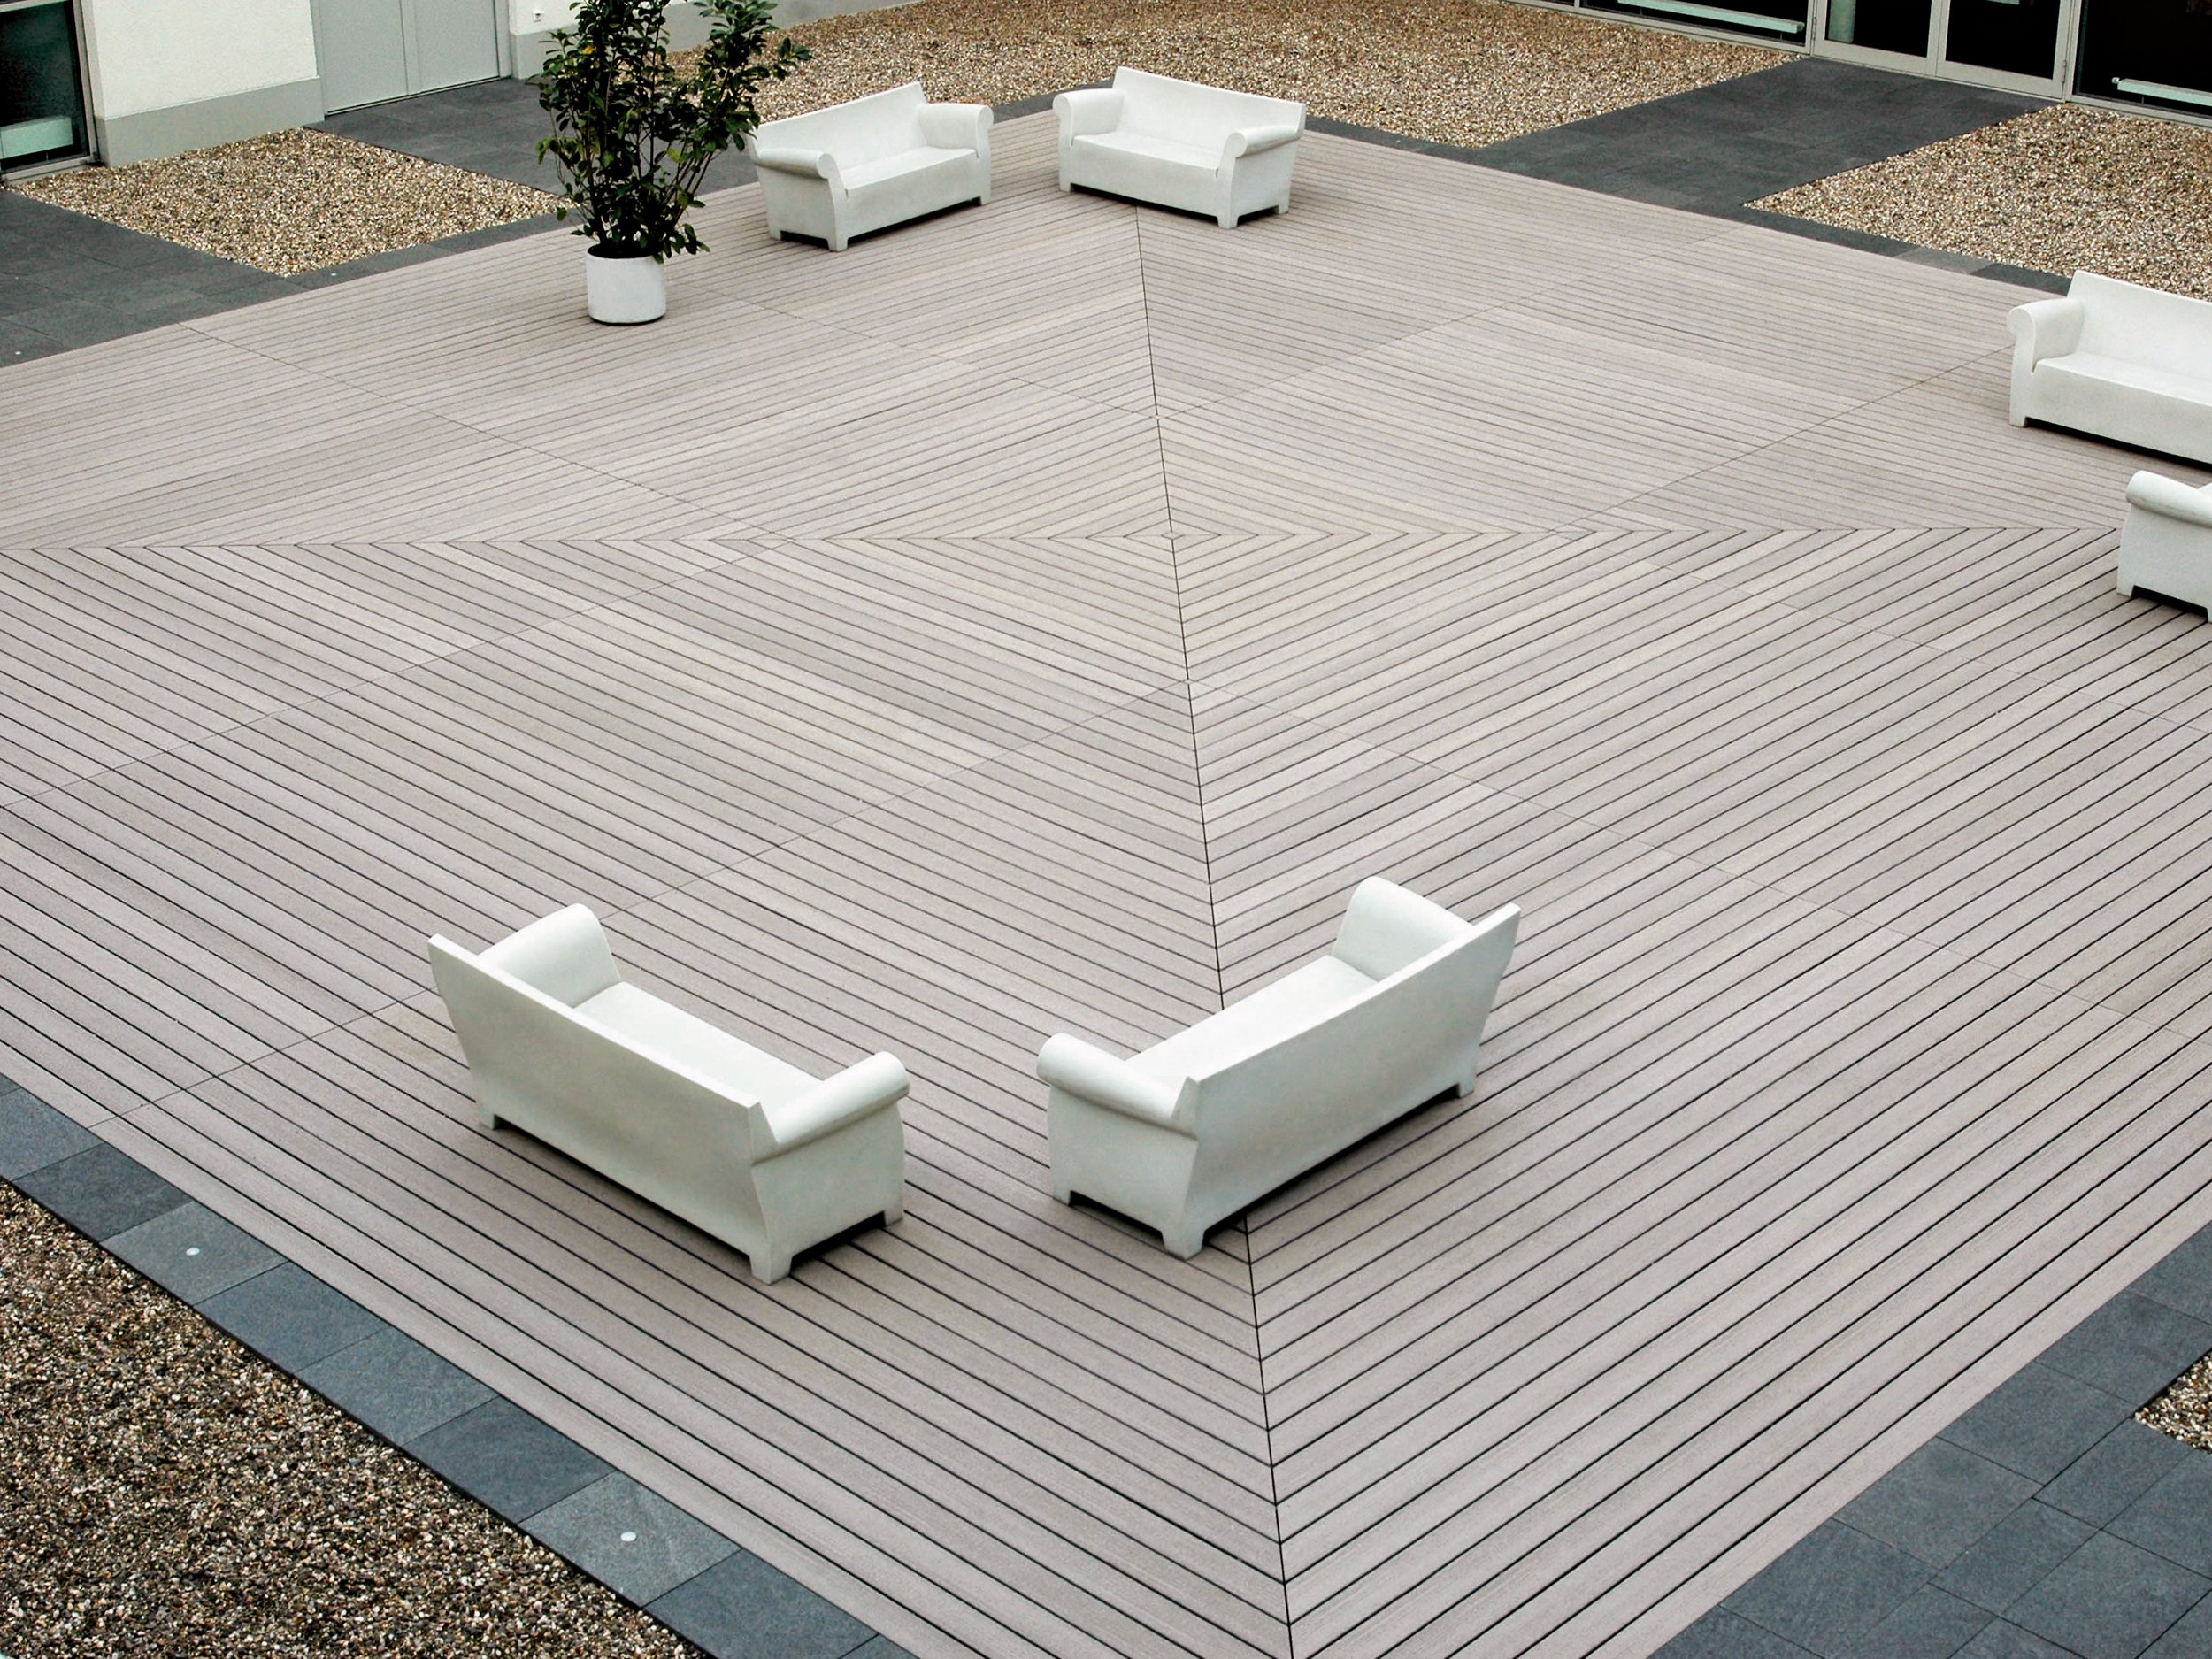 Wpc decking pure classic basalt by mydeck for Wpc decking